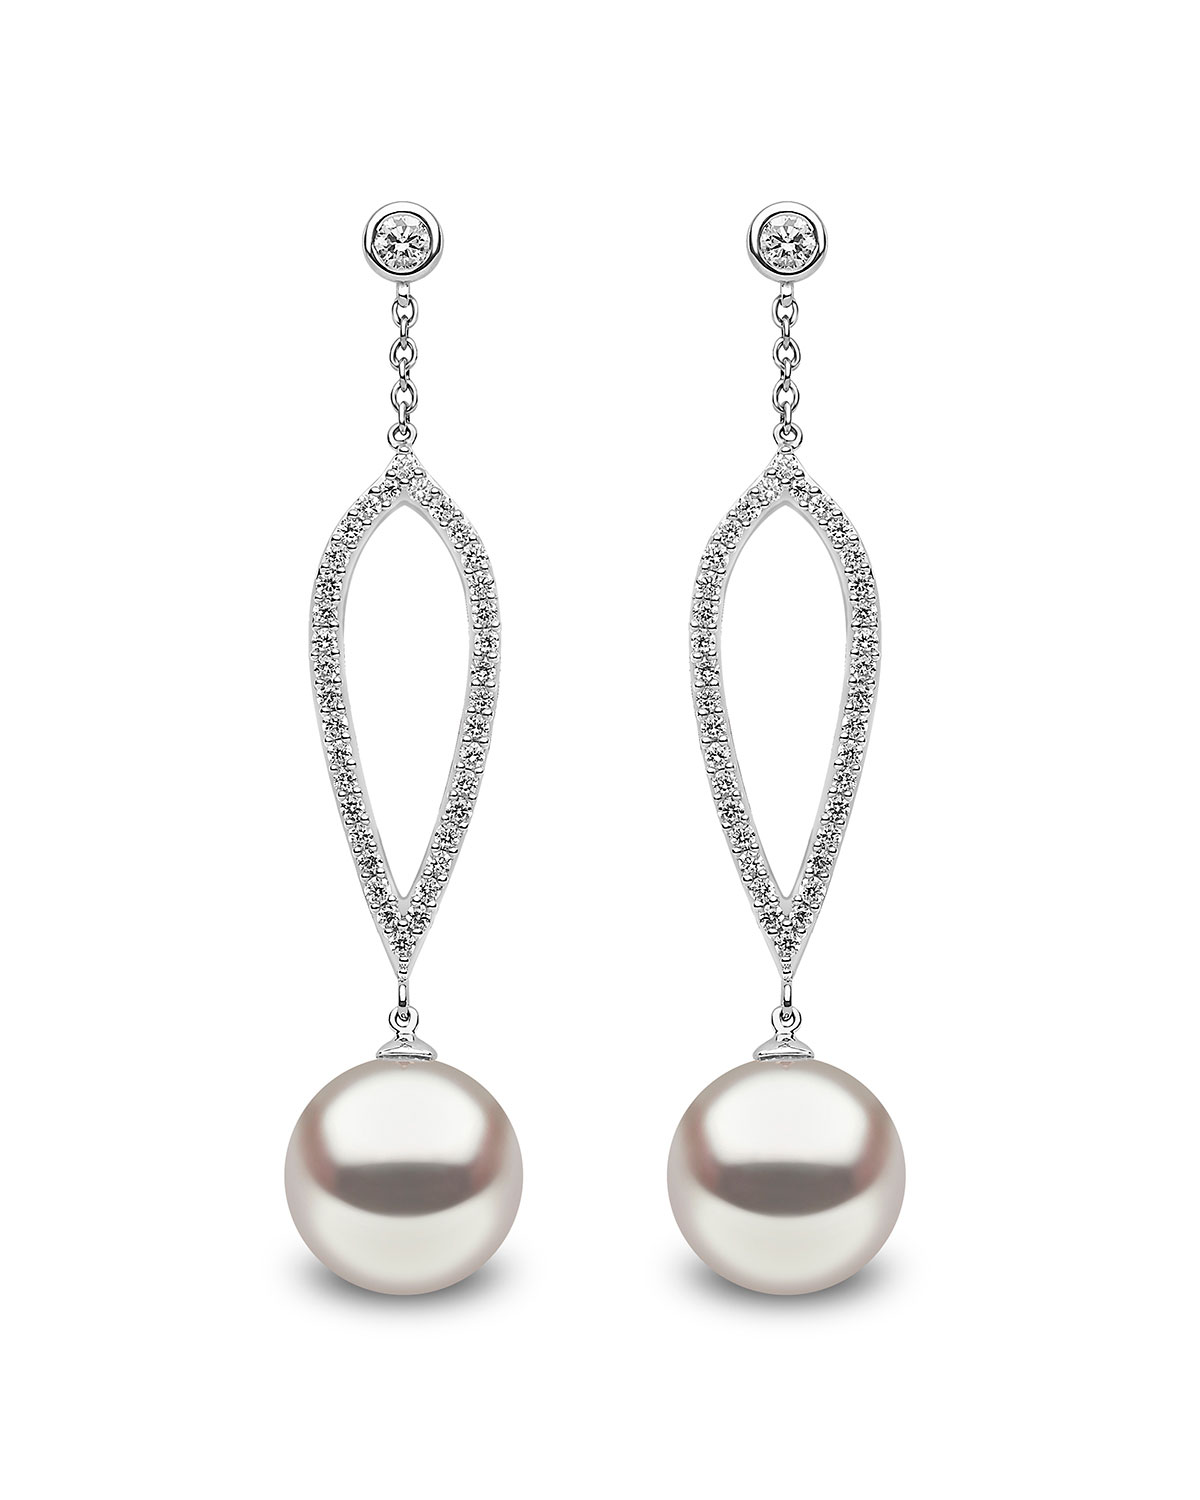 YOKO LONDON 18K White Gold 10Mm Pearl & Diamond Drop Earrings